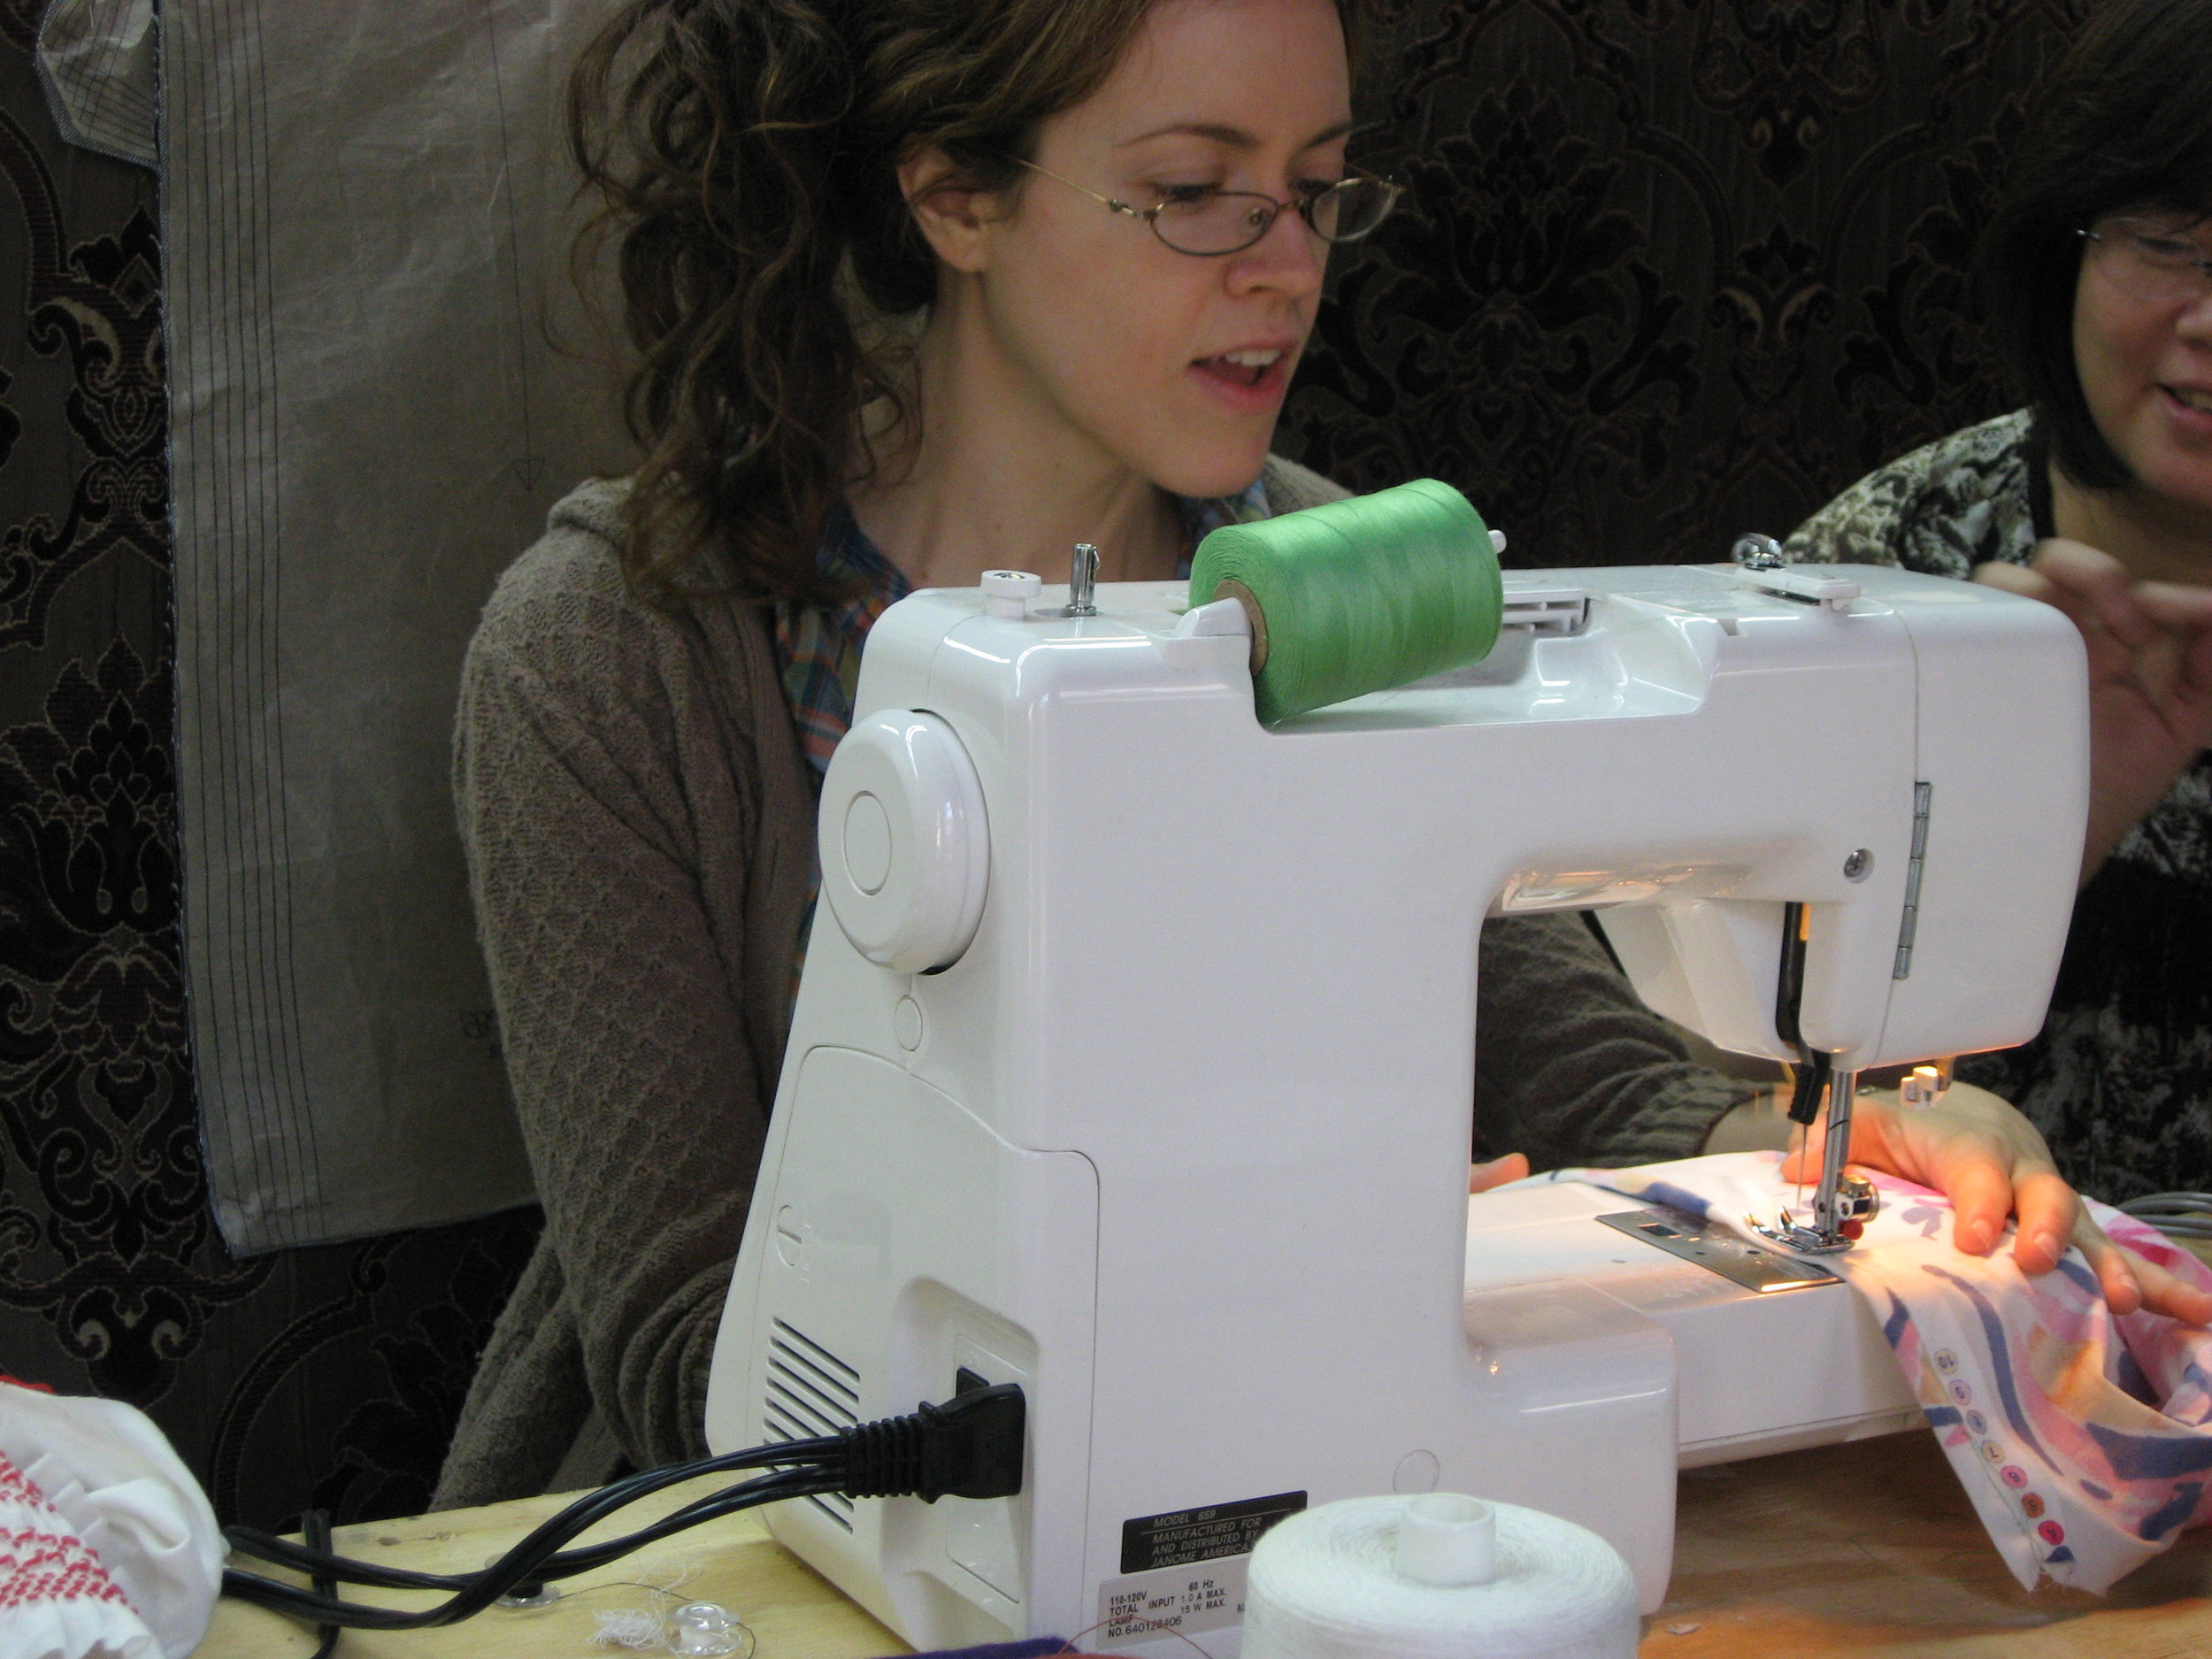 doing-some-sewing_4942823429_o.jpg